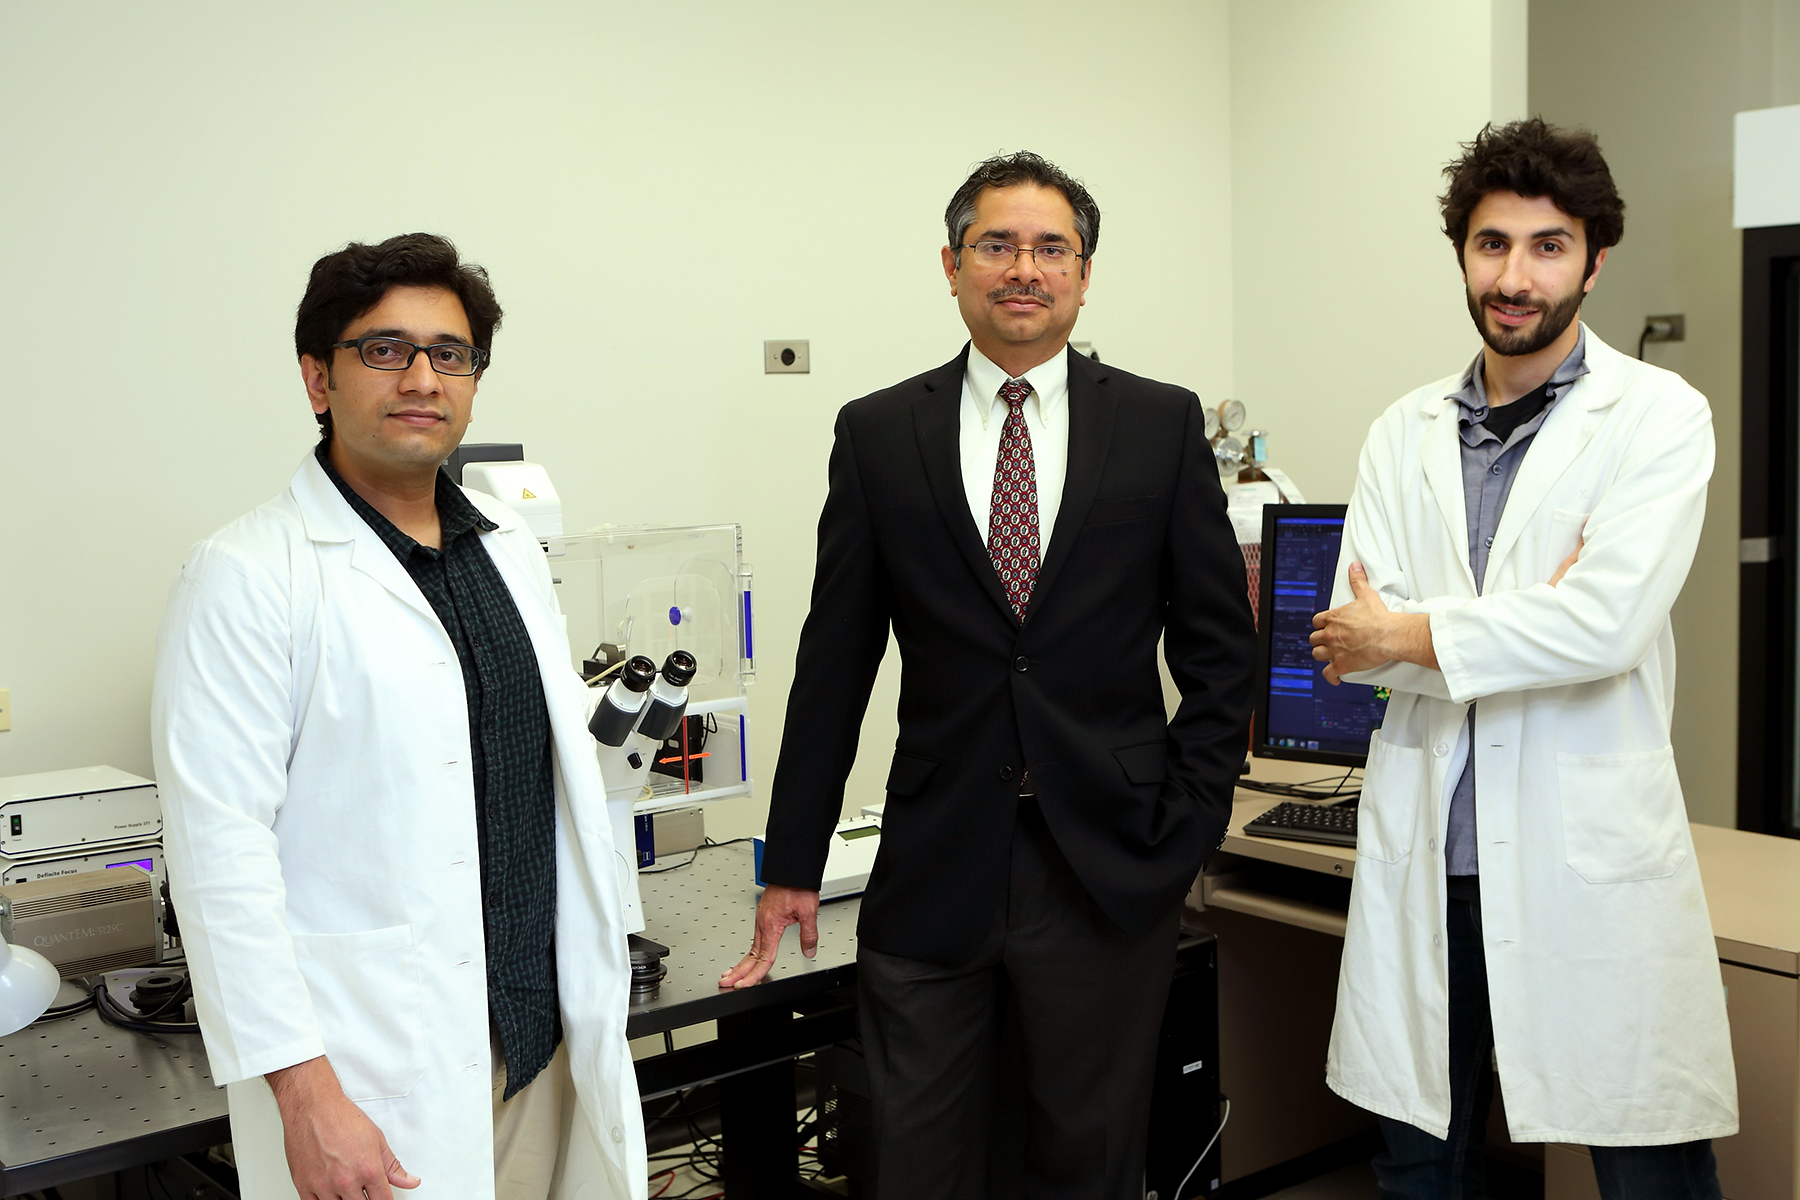 A new class of drug to treat herpes simplex virus infection | UIC Today